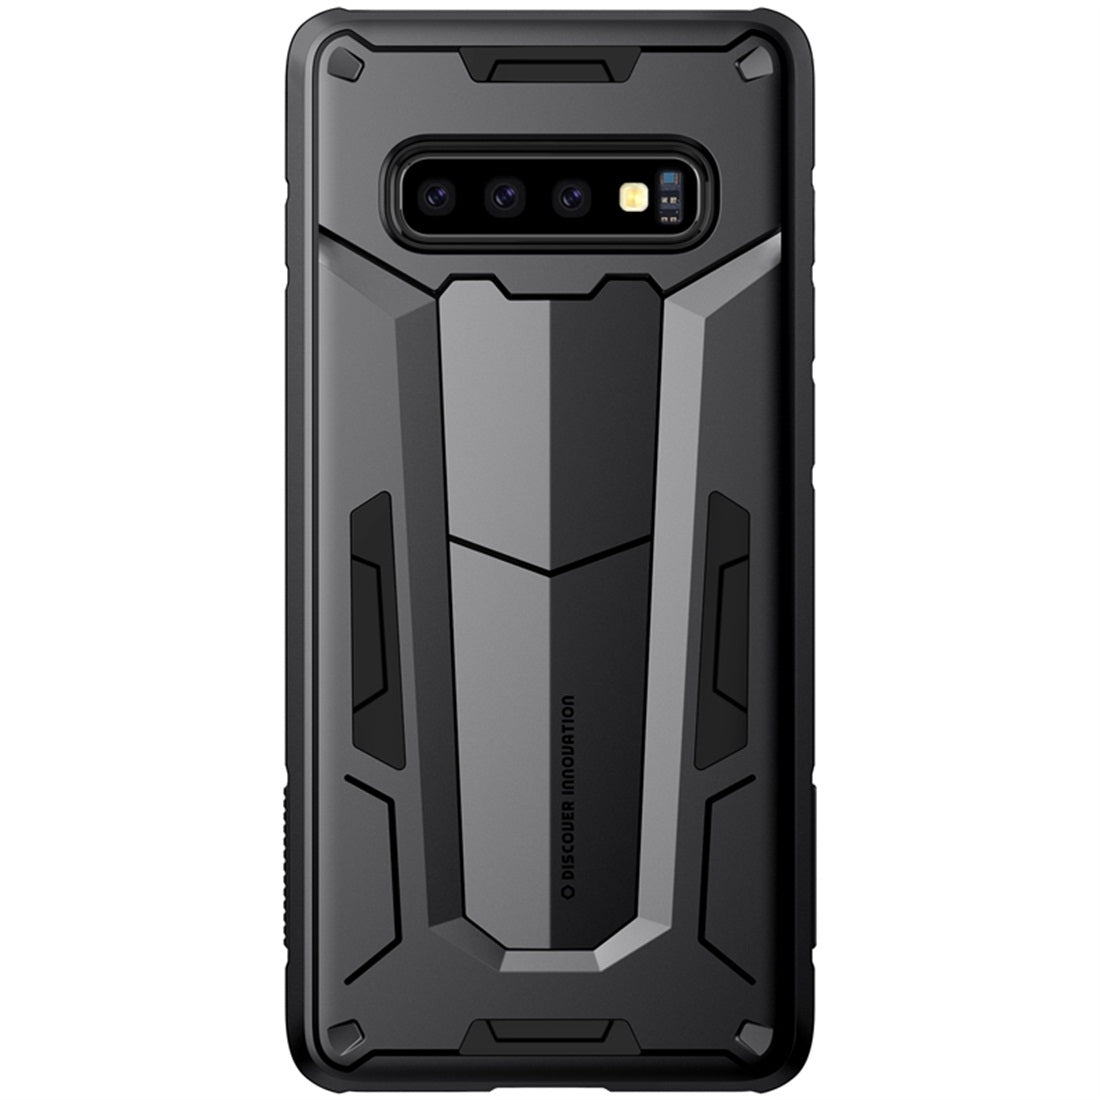 NILLKIN Tough Defener II Case Shockproof TPU + PC Case for Galaxy S10 Plus (Black)